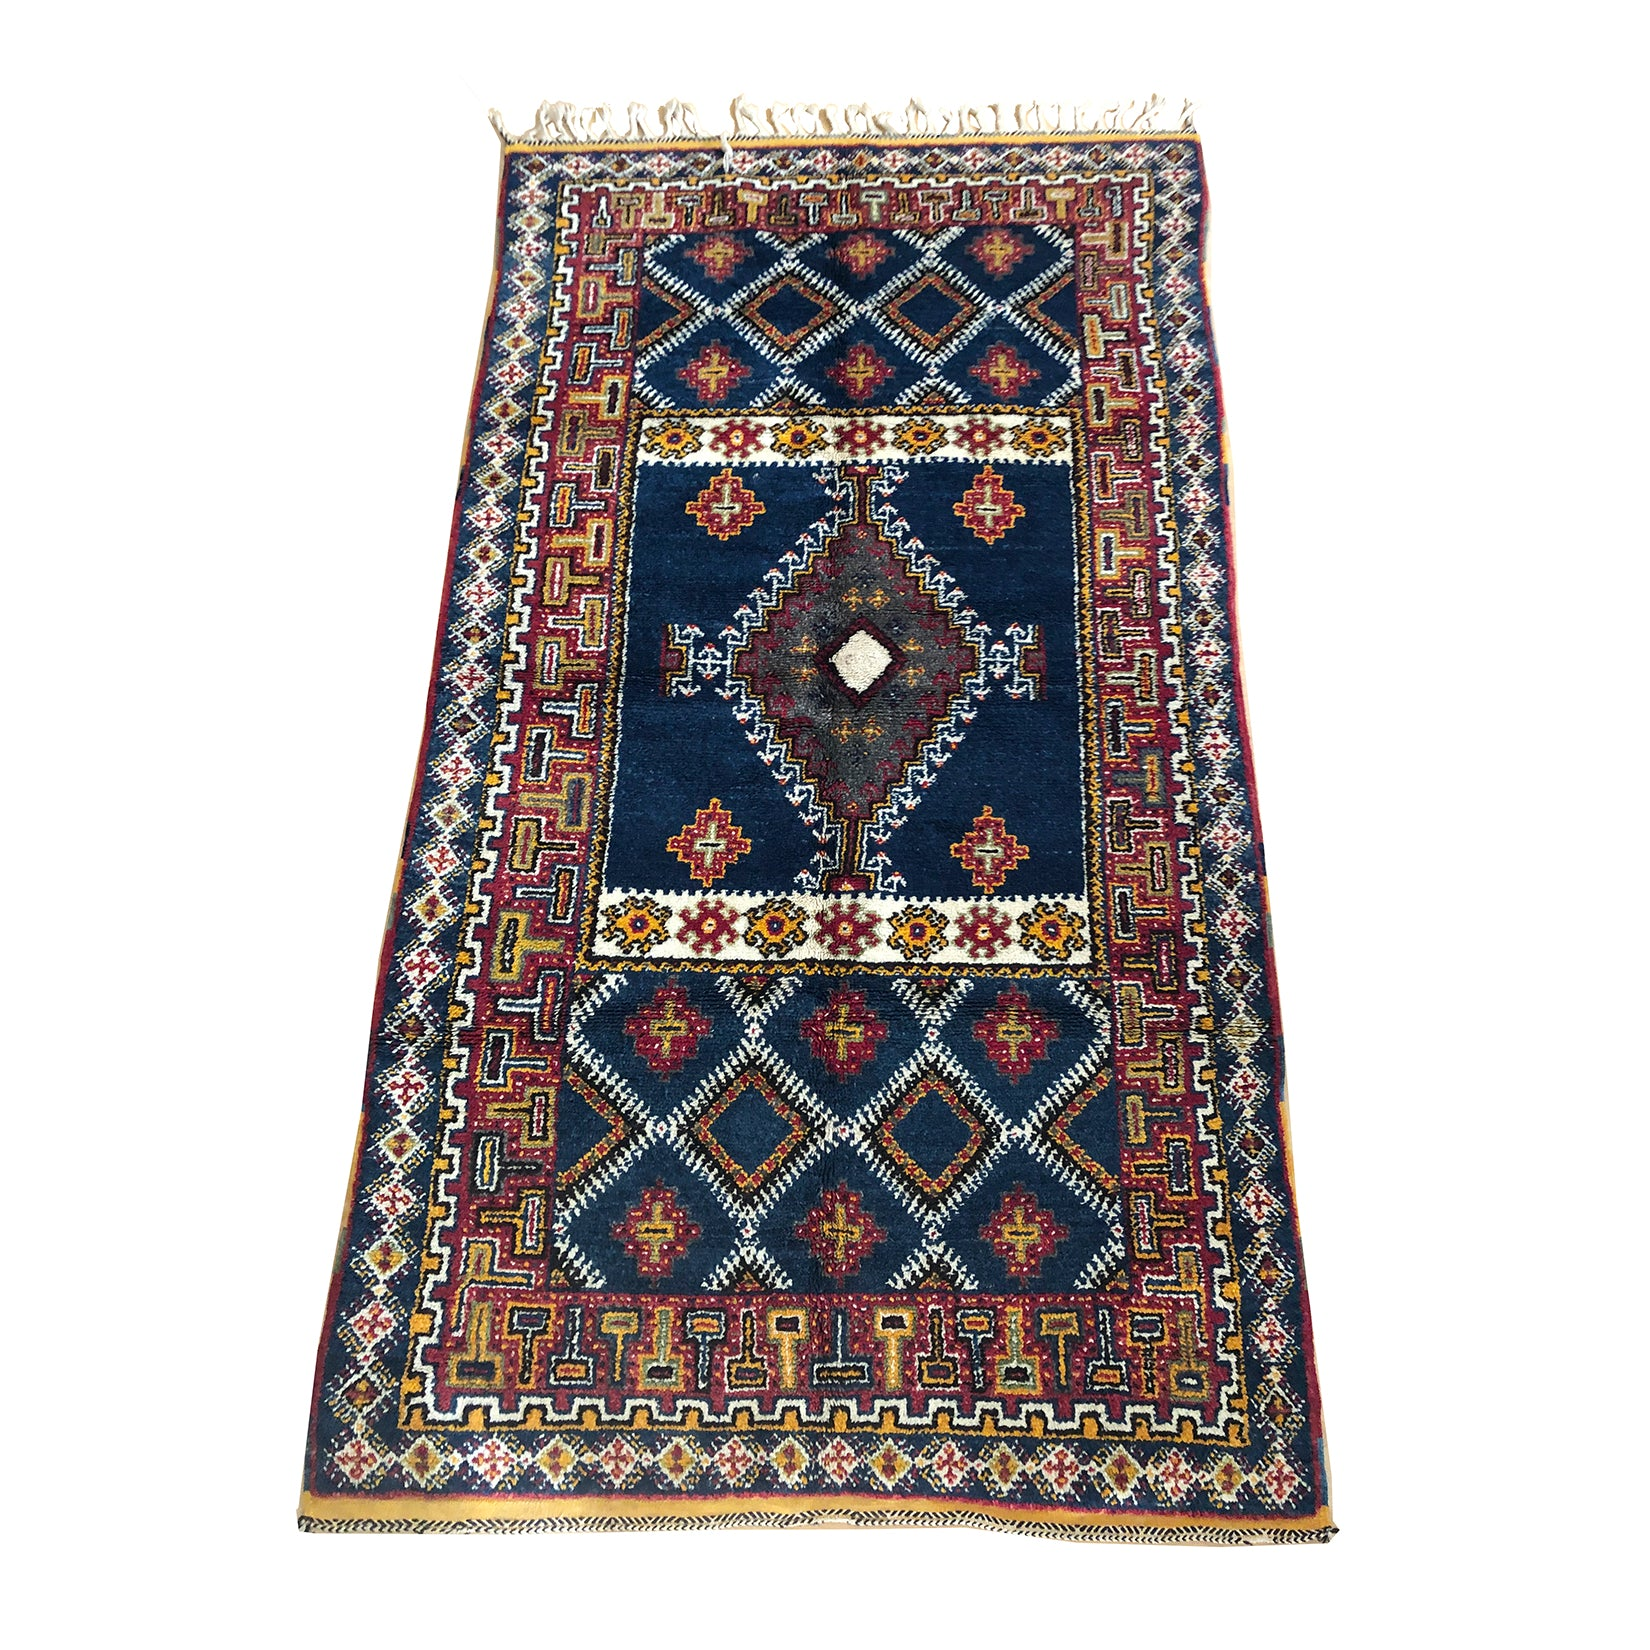 DENIA - Ait Ouaouzguite low pile Moroccan rug - Kantara | Moroccan Rugs